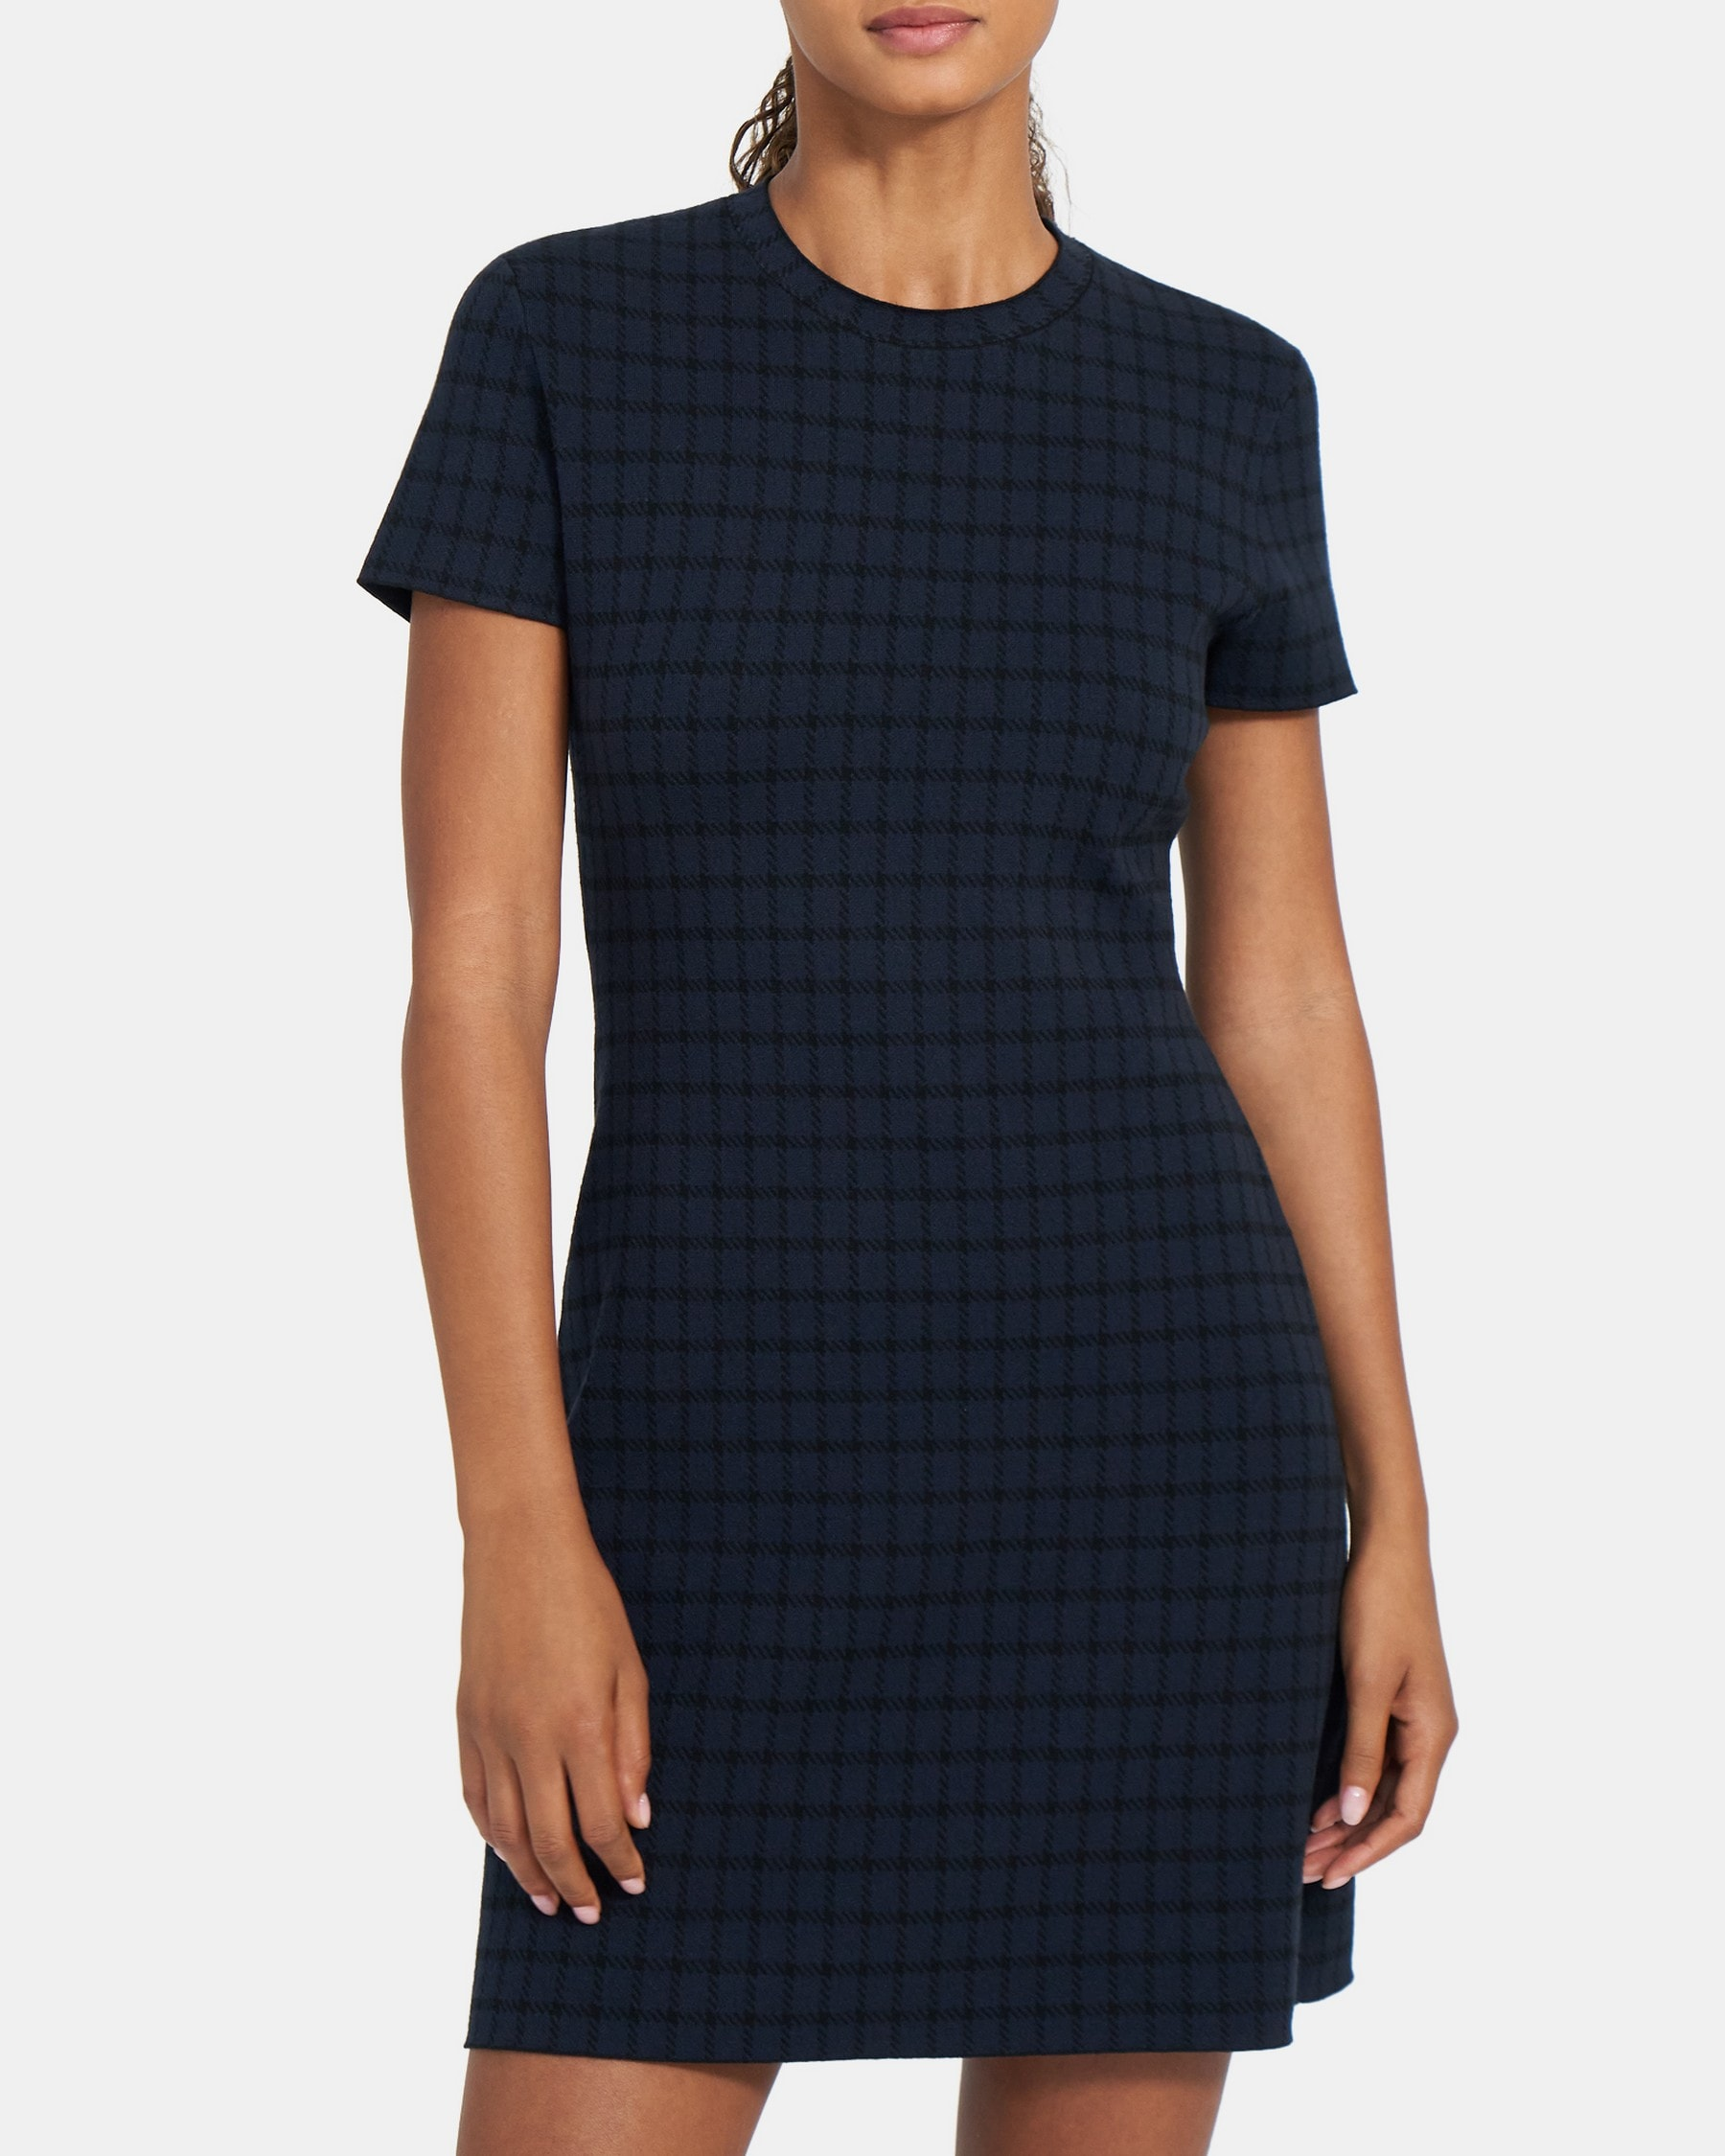 Theory Flare Dress in Checked Stretch Viscose Knit